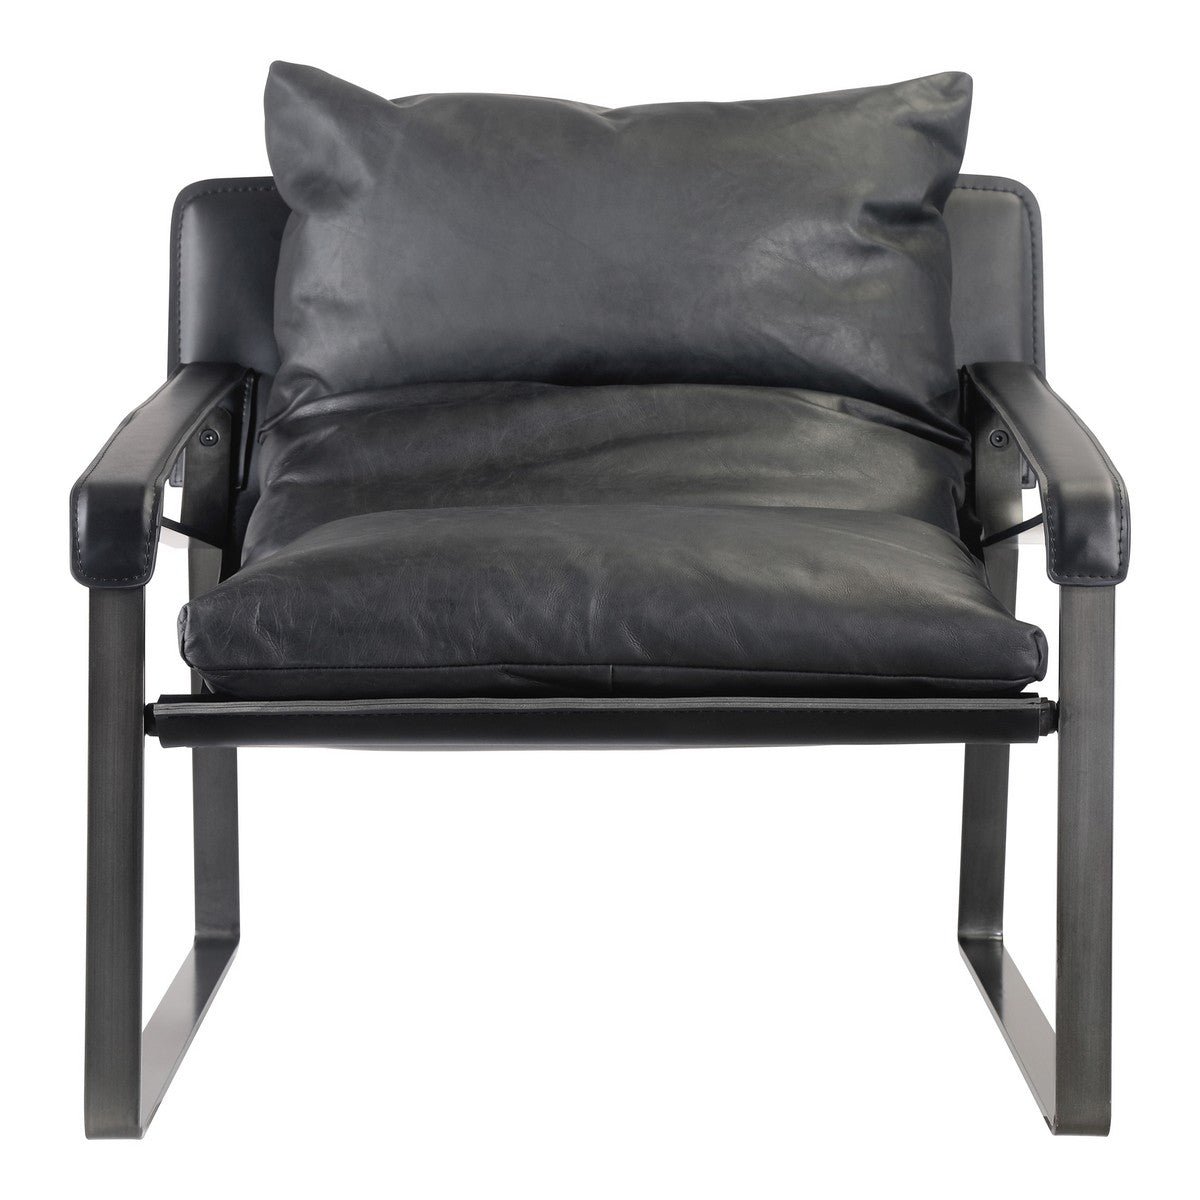 Moe's Home Collection Connor Club Chair Black - PK-1044-02 - Moe's Home Collection - lounge chairs - Minimal And Modern - 1